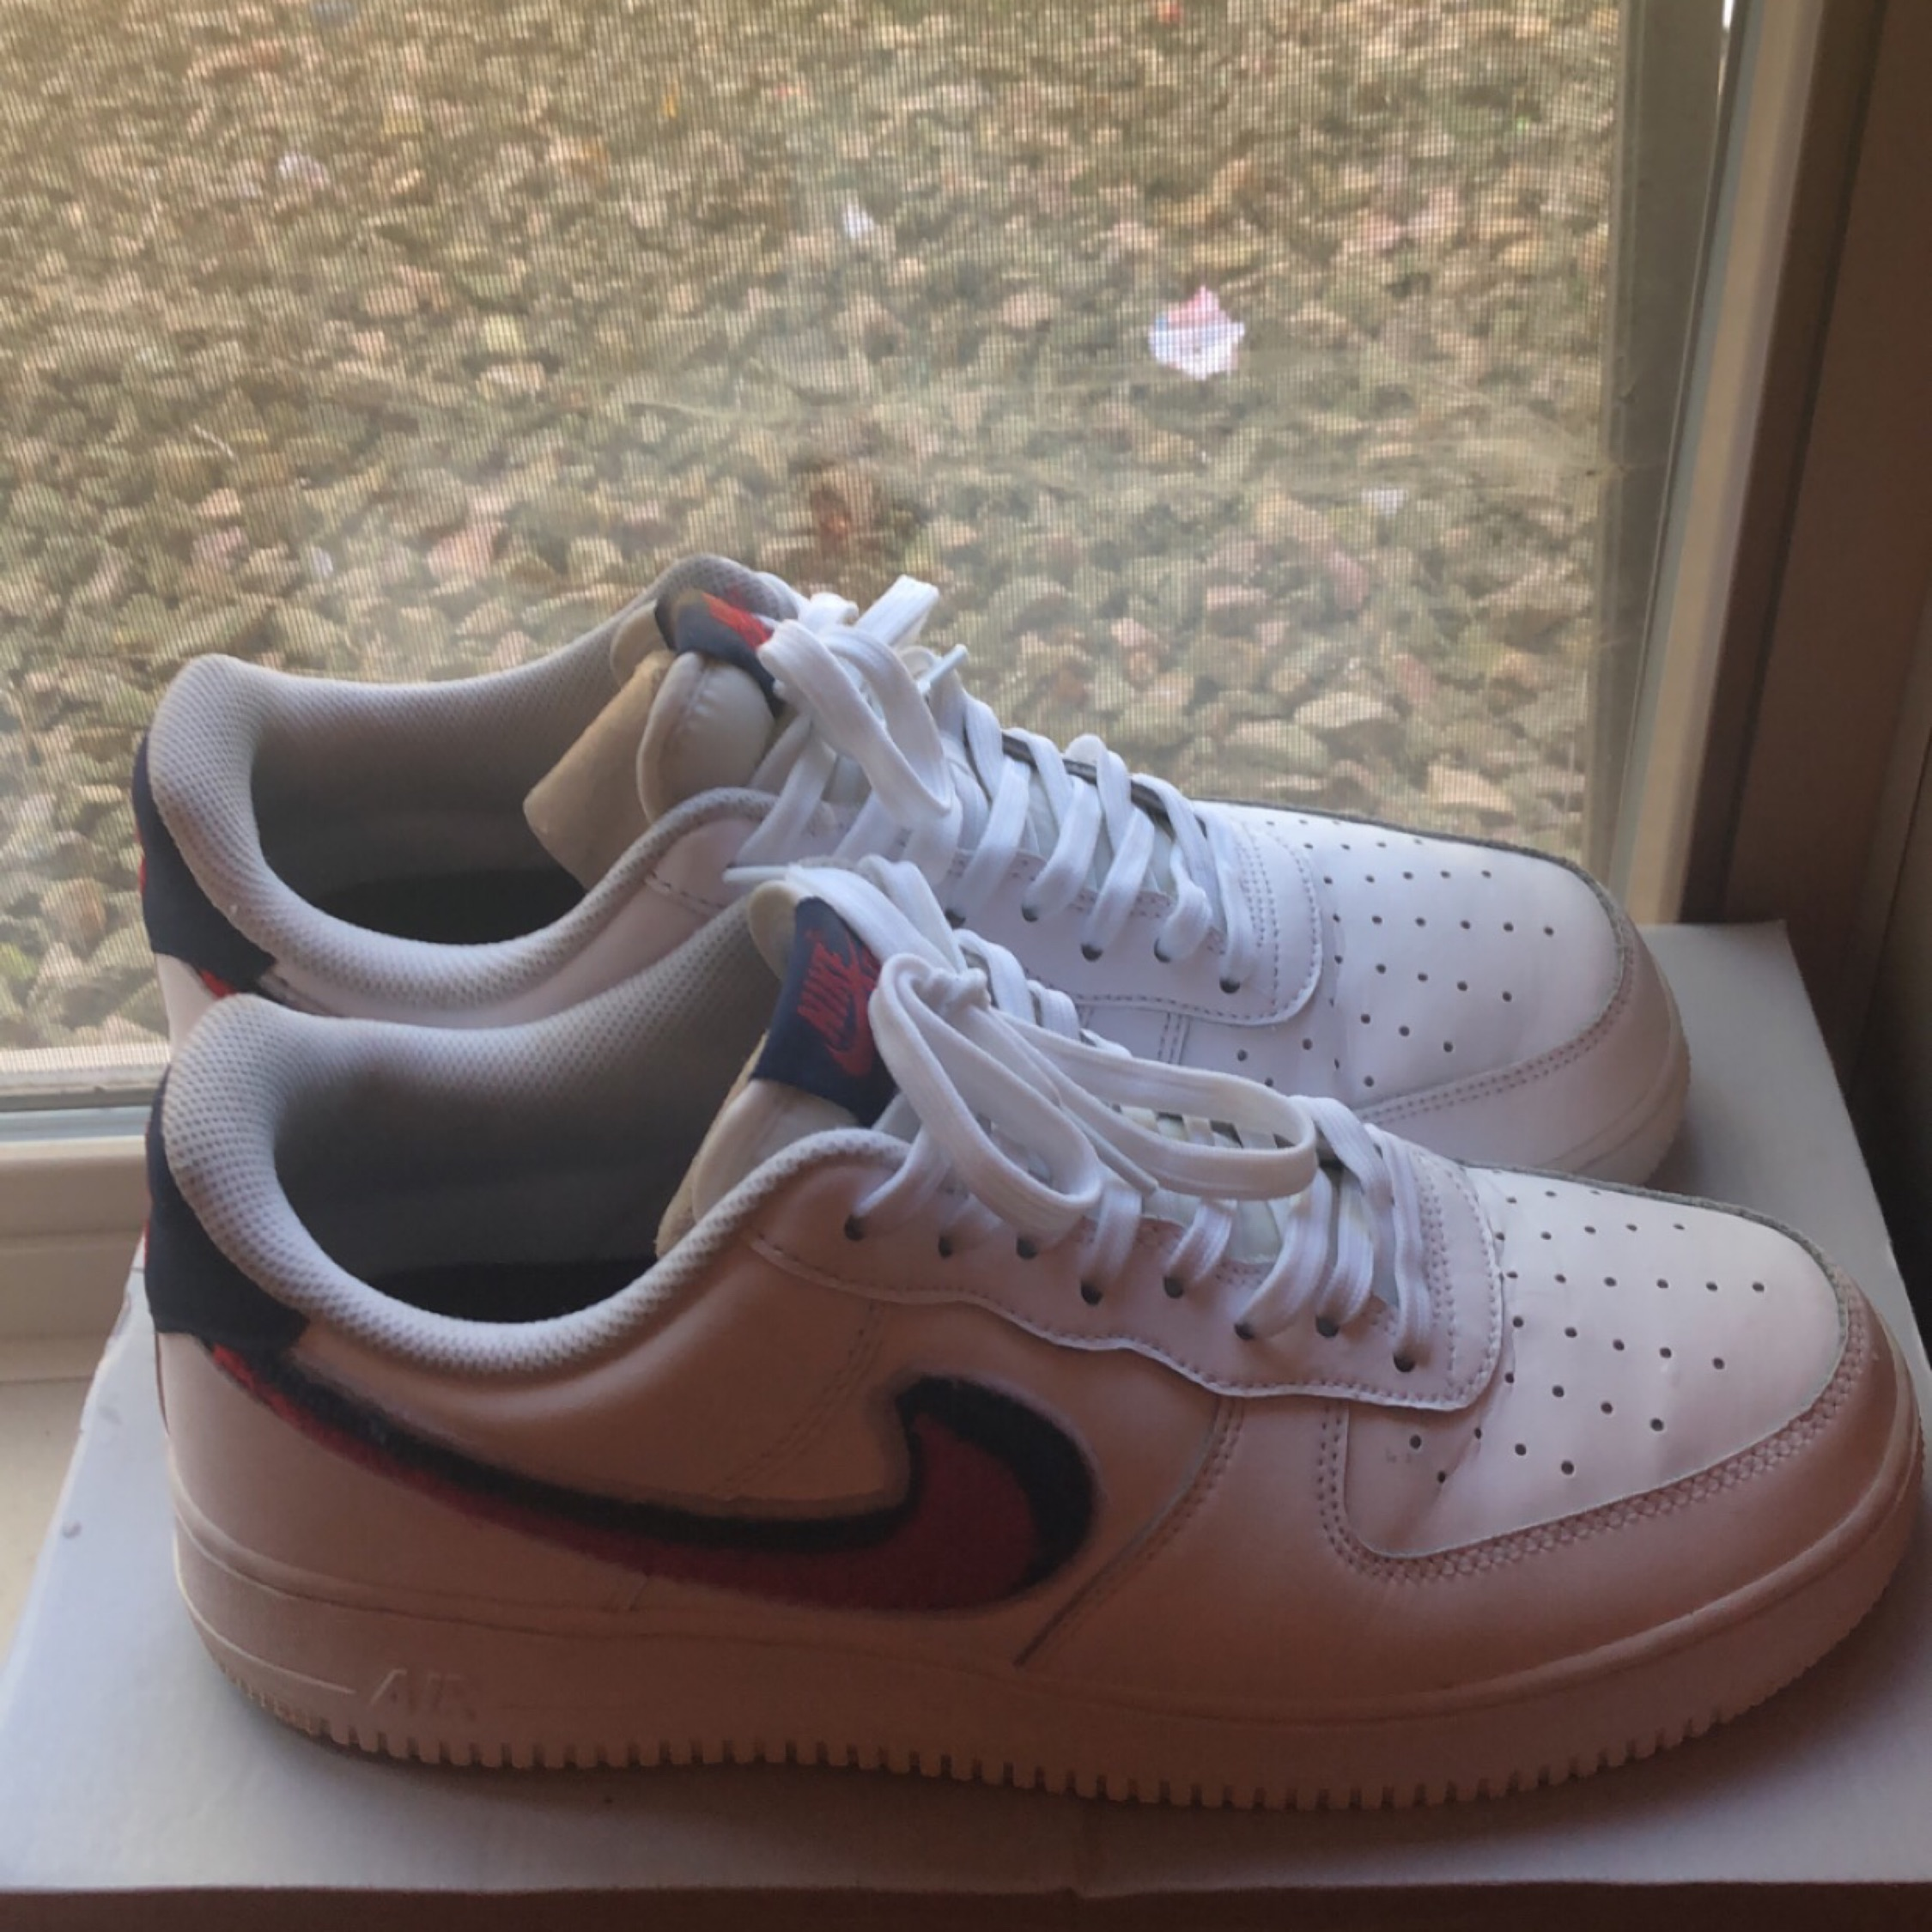 Air Force 1 Low 3D Chenille Swoosh